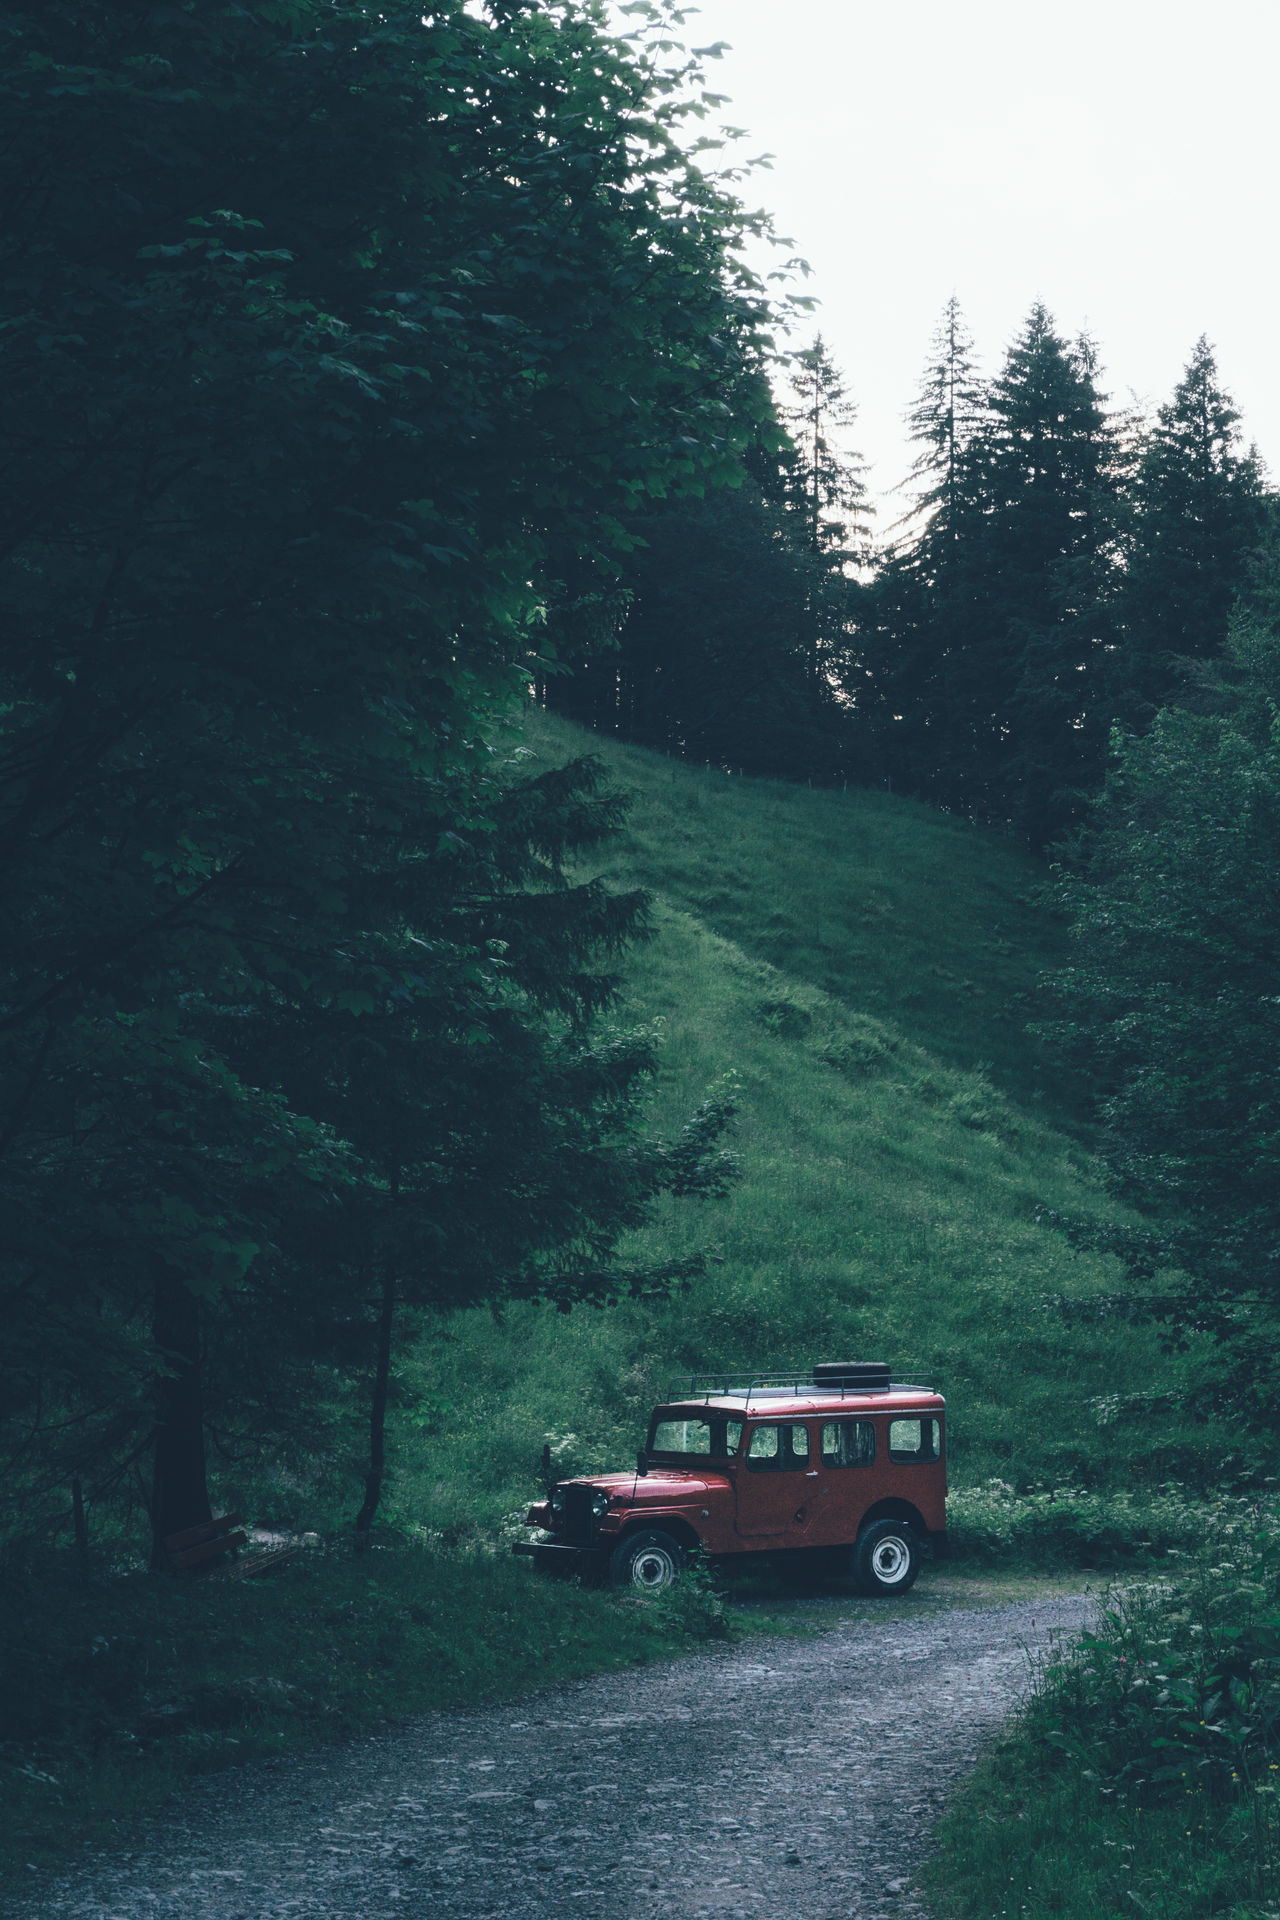 Red offroad car parked in a forrest of the Alpstein mountain massif Jeep Red Car Suisse  Landrover  Car Switzerland Swiss Green Forrest Forrest Red Jeep Parked Car Forrest Trail Alpstein Appenzell Brüeltobel 4 Wheeler Outdoor Adventure Offroad Adventure Club